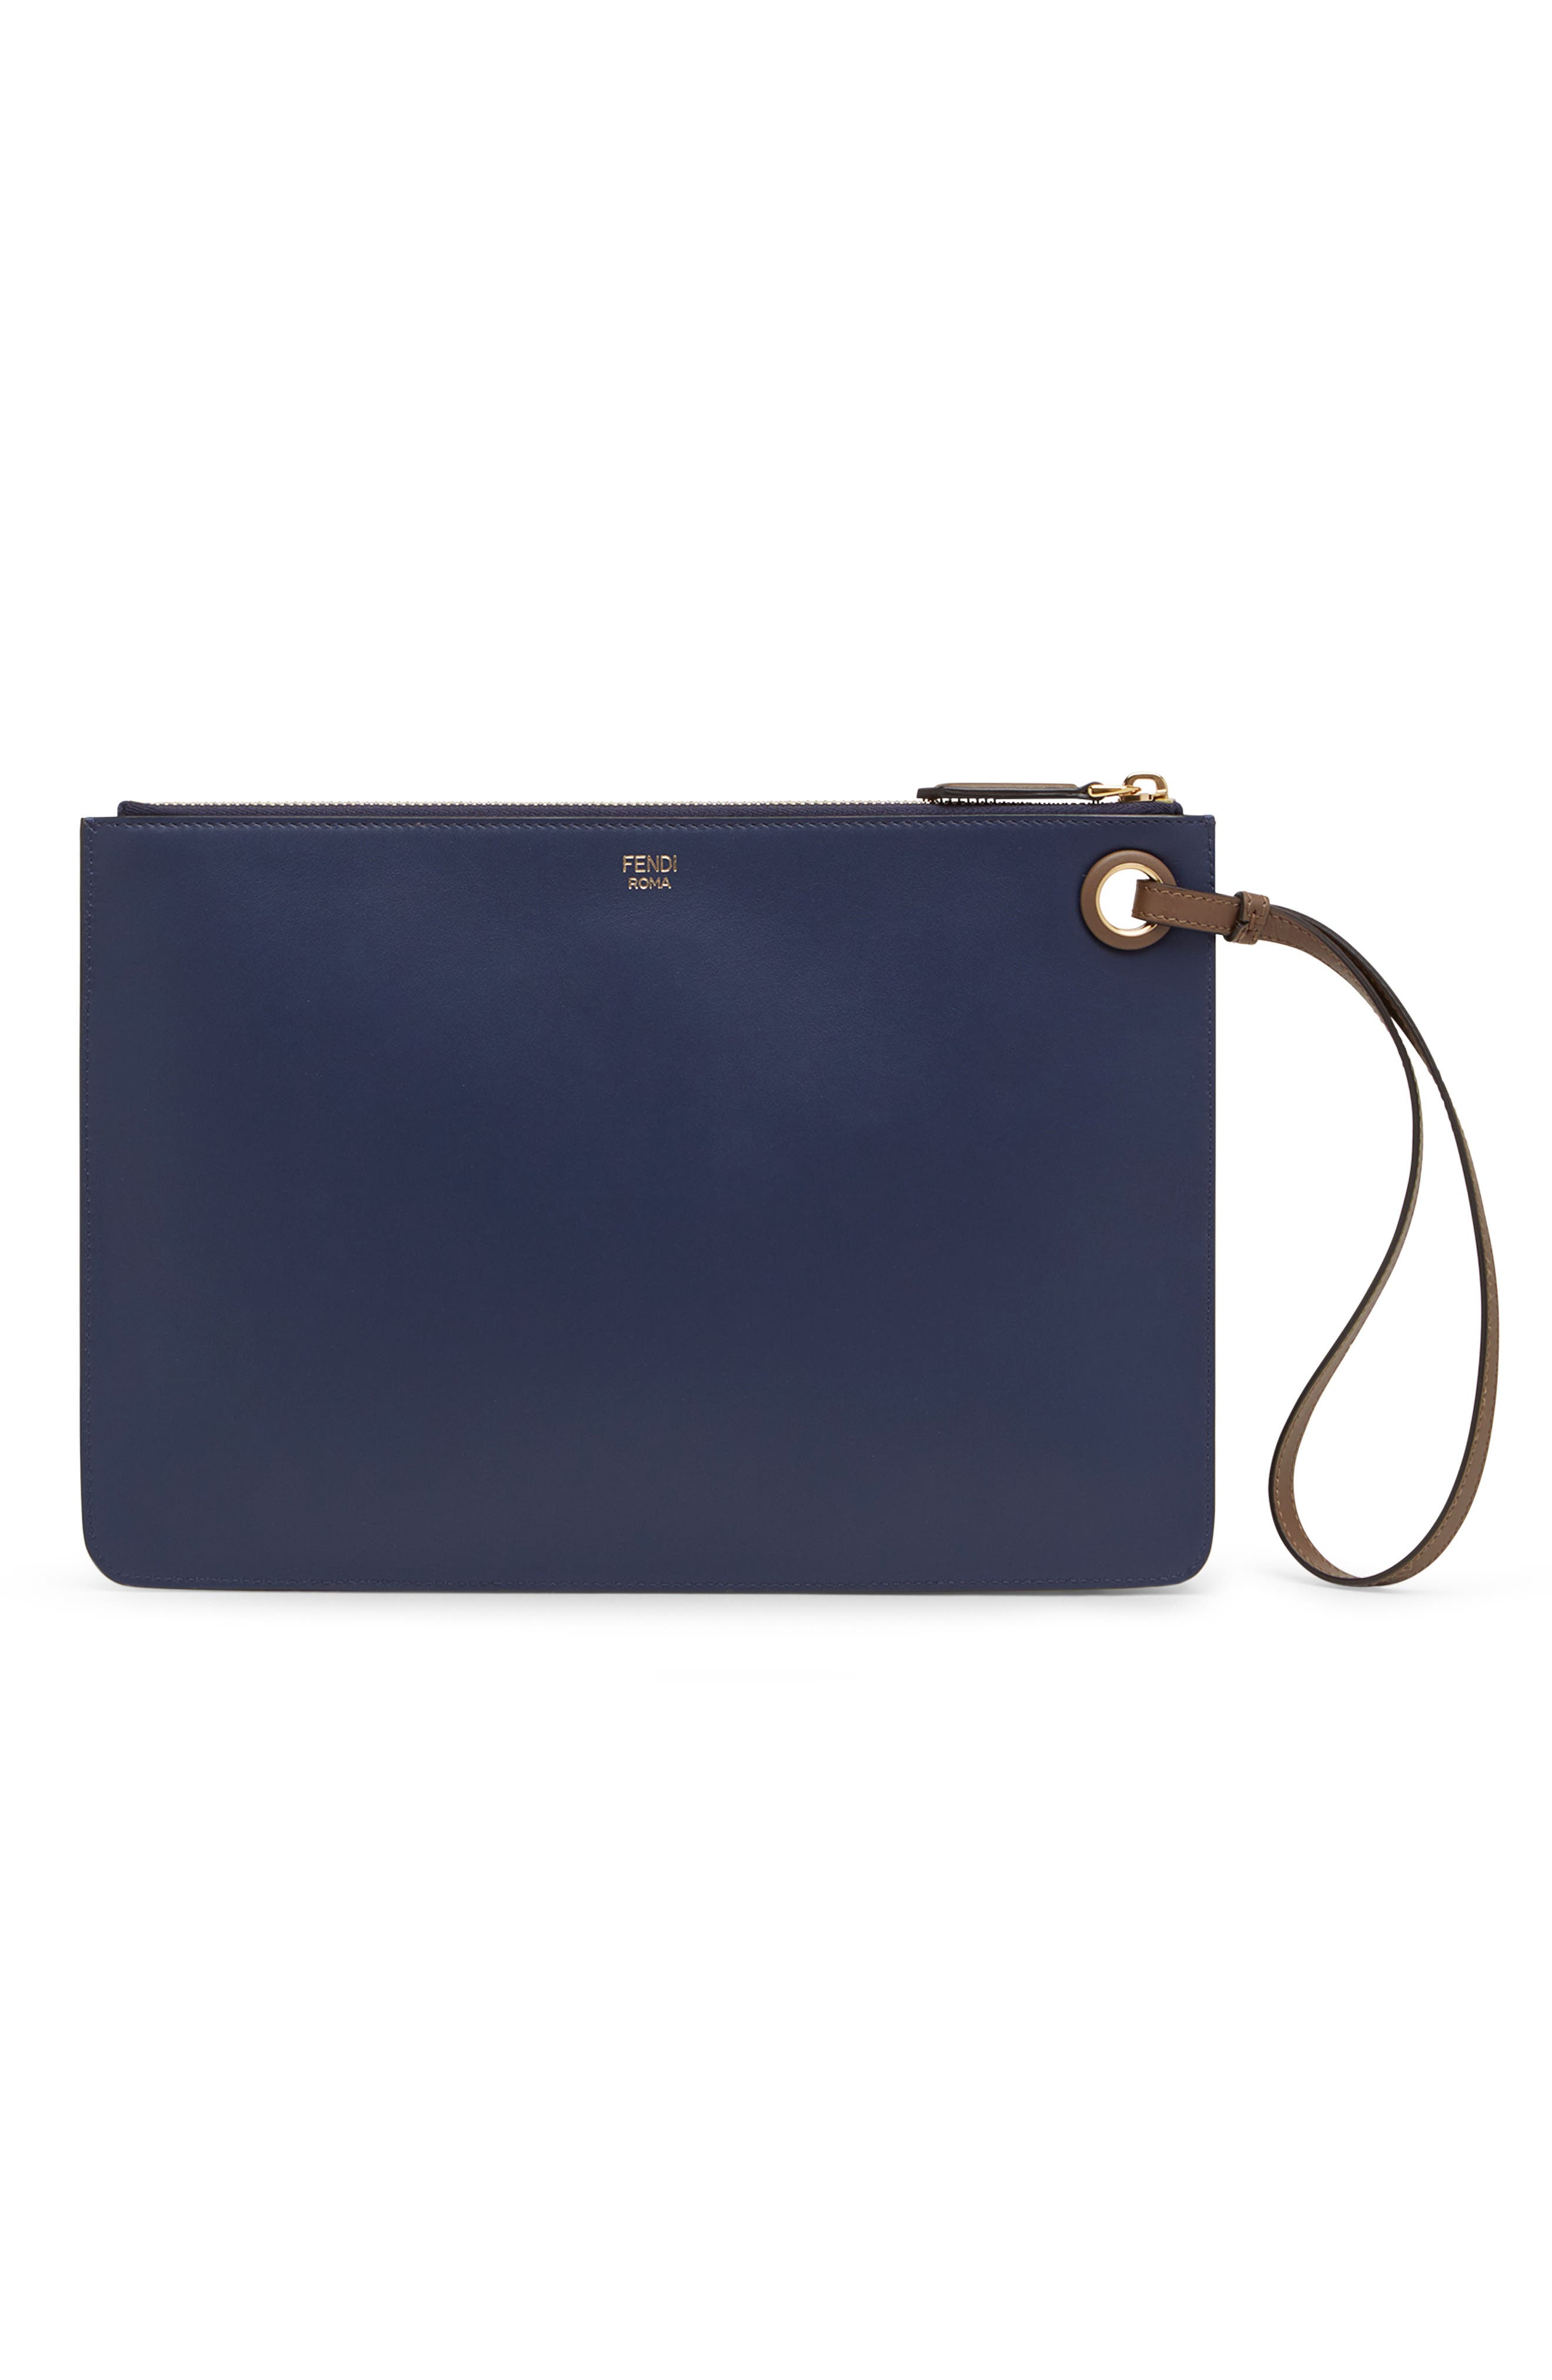 FENDI, x FILA Medium Mania Logo Leather Clutch, Alternate thumbnail 2, color, BLUE/ BERRY MULTI